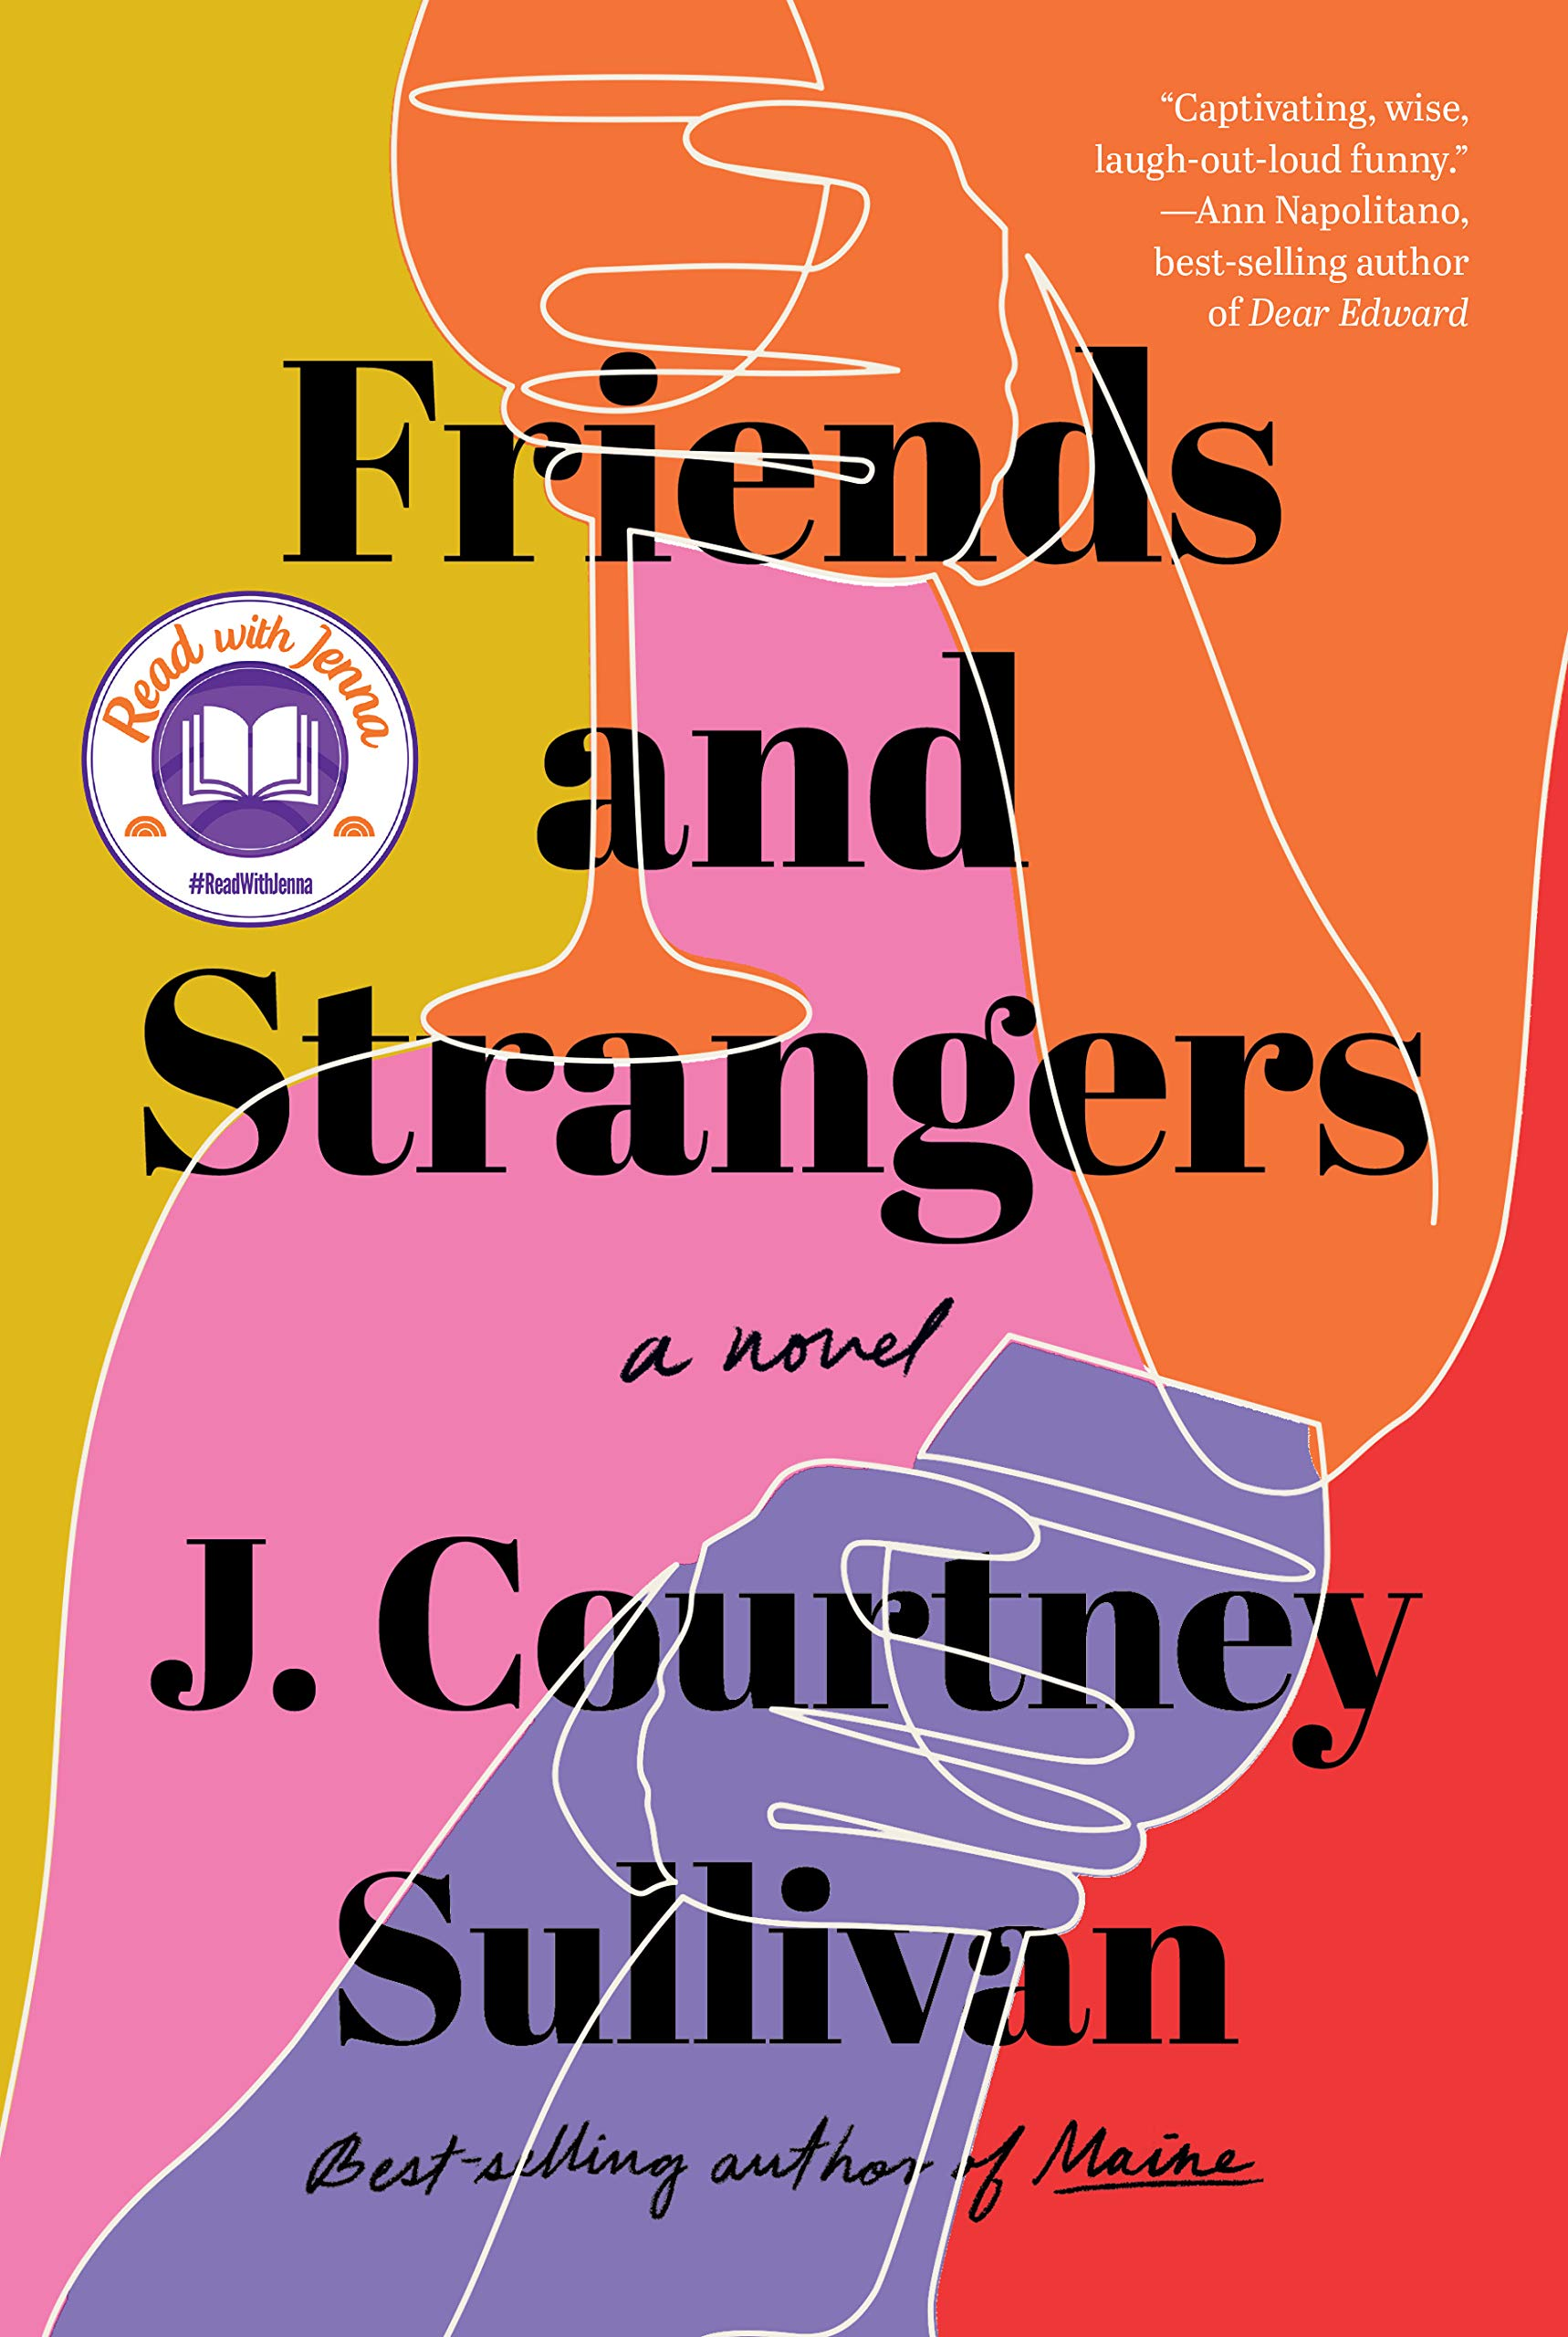 Friends and Strangers: A novel: Sullivan, J. Courtney: 9780525520597:  Amazon.com: Books